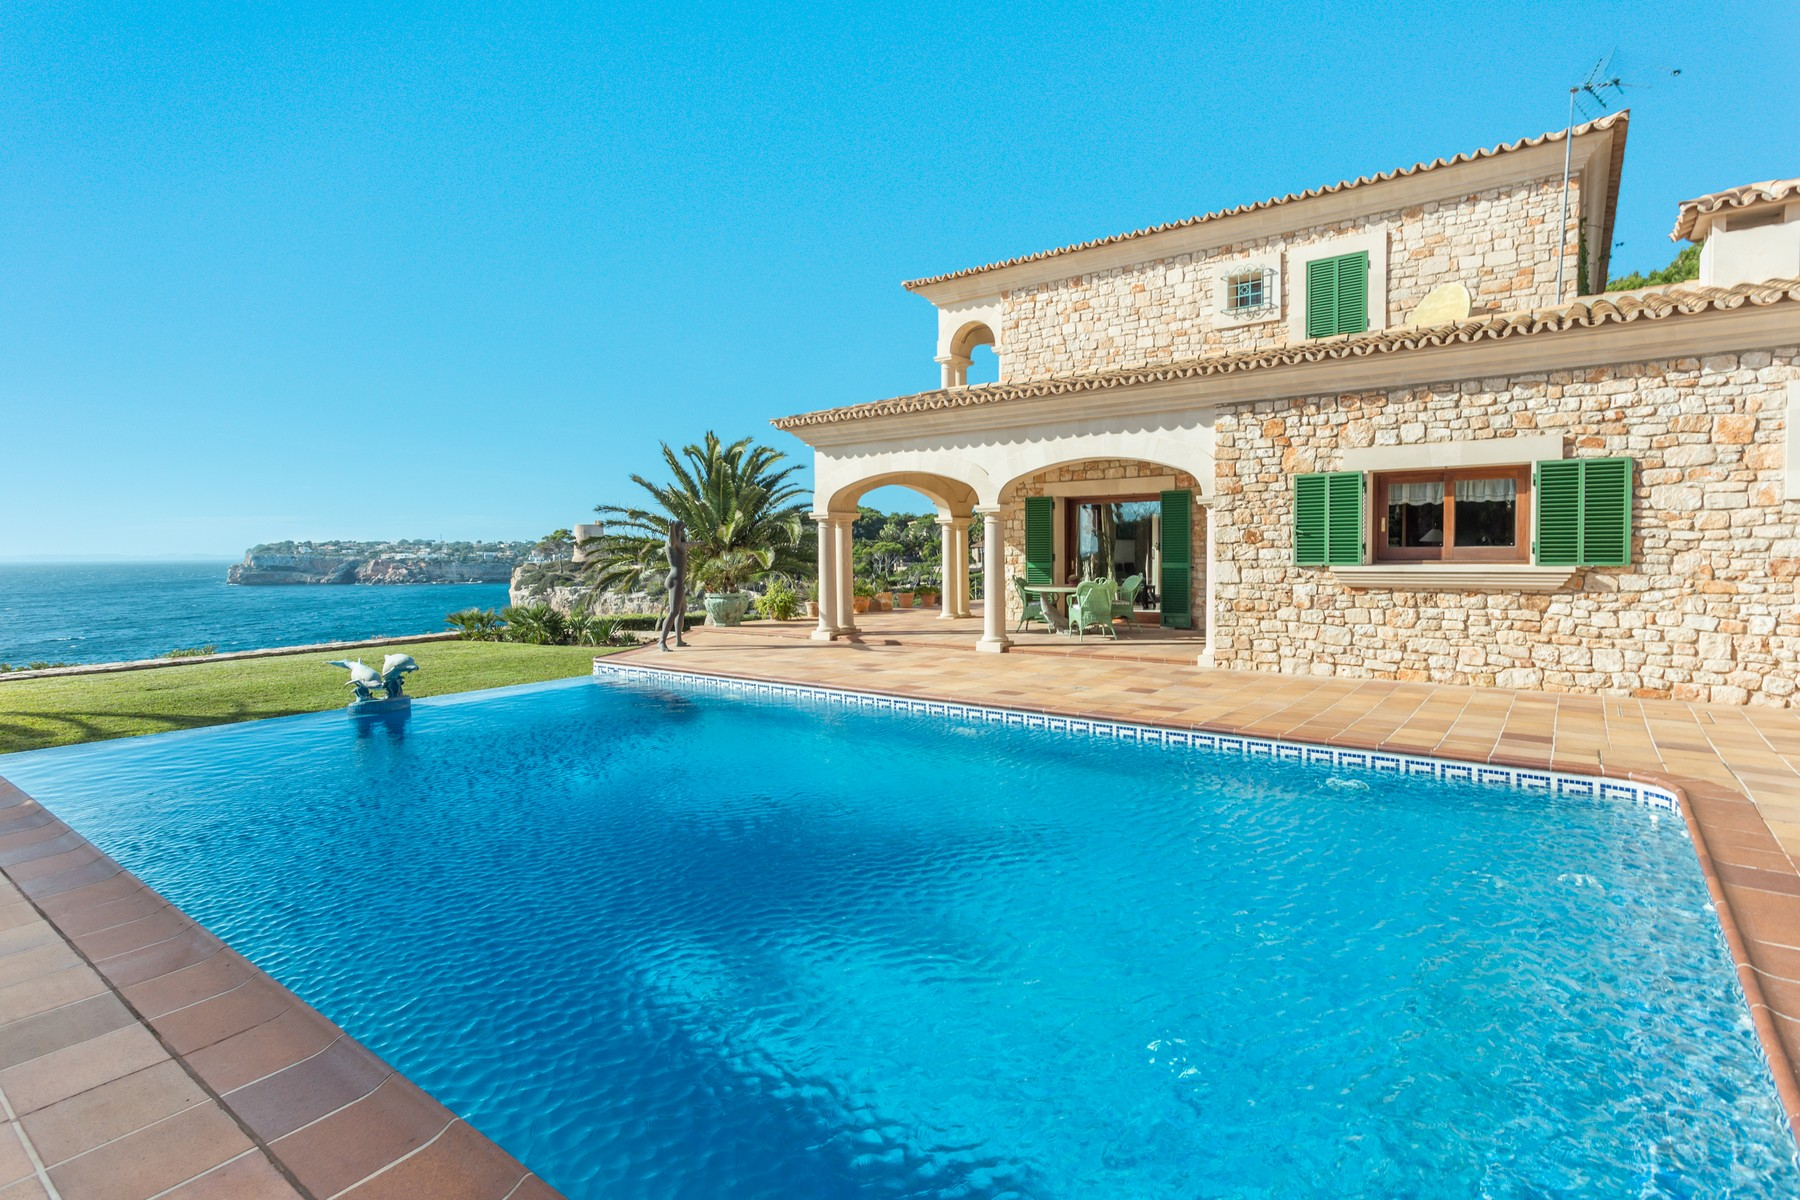 Single Family Home for Sale at Exclusive frontline villa in Santanyí Santanyi, Mallorca, 07171 Spain